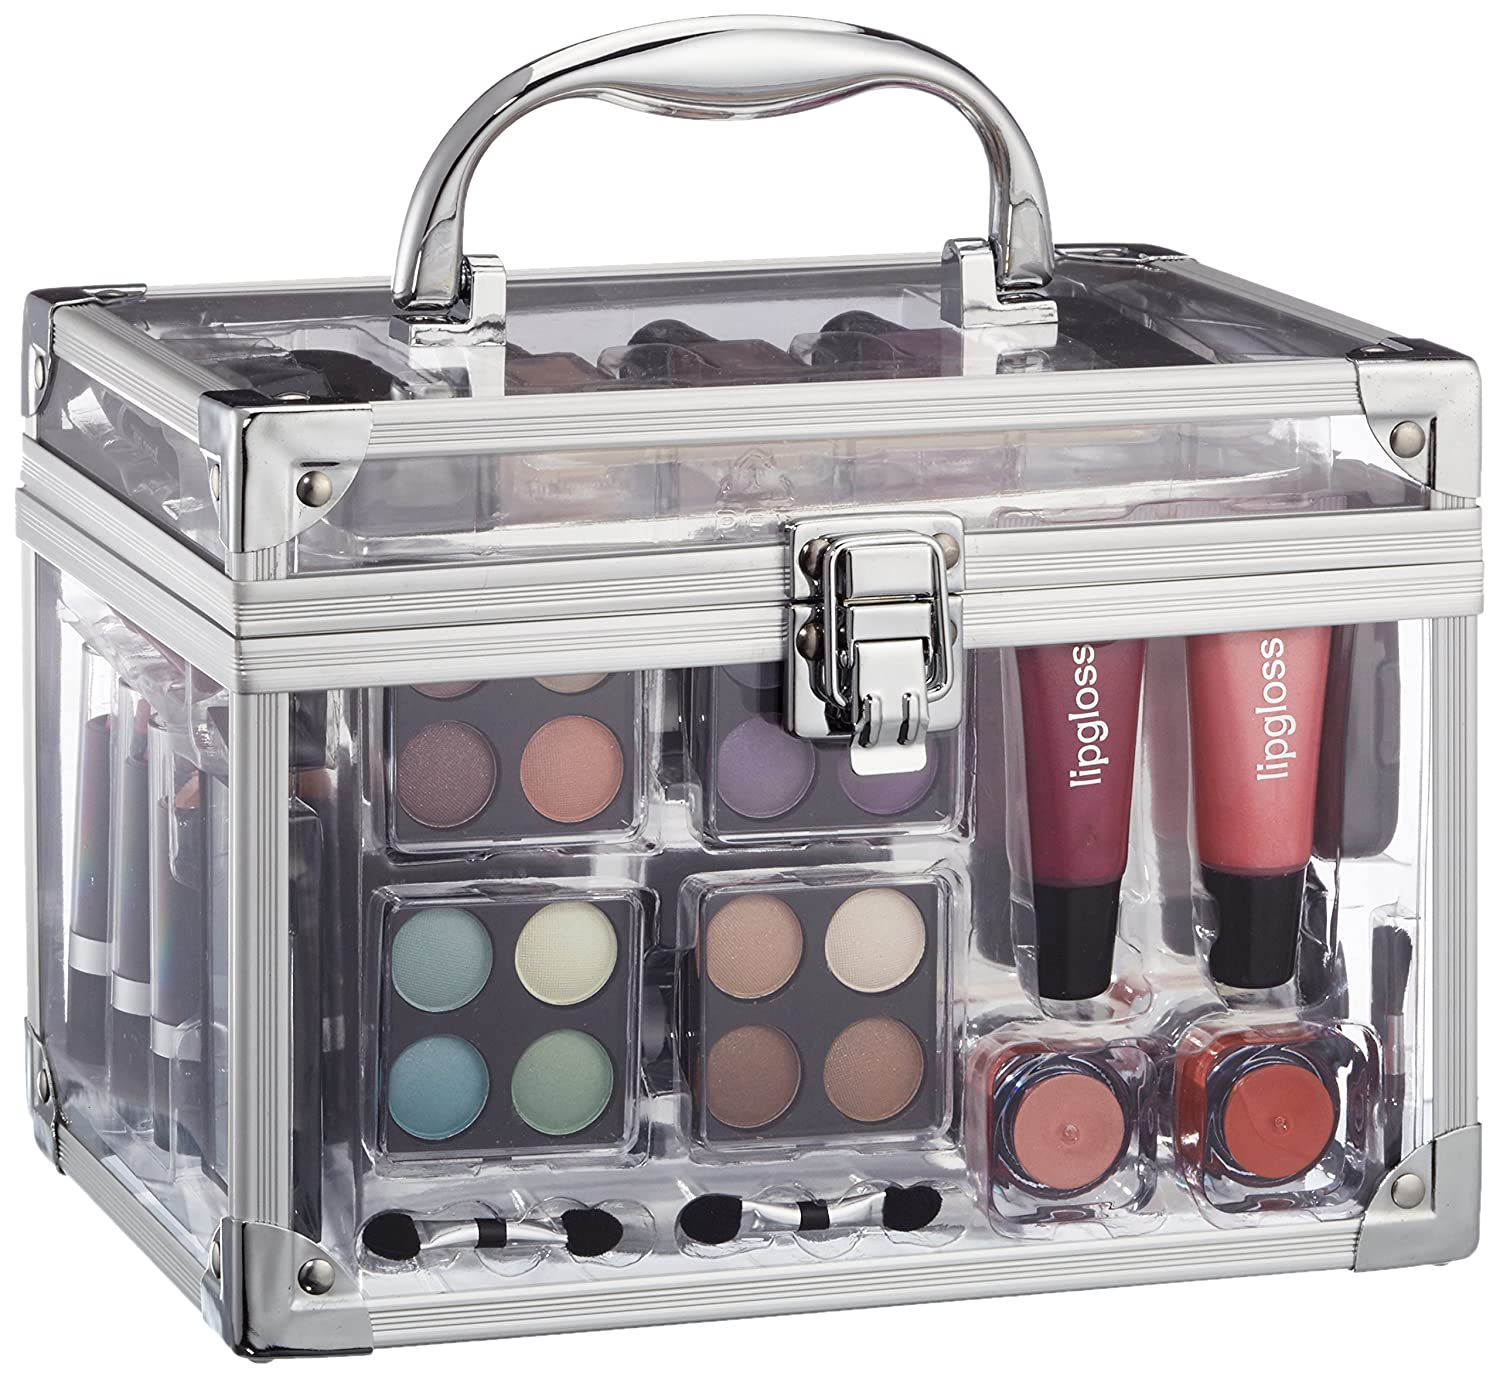 Makeup Trading, Paleta de maquillaje Set Transparent - 102 gr. Briconti Gmbh Spain SCHMINK605